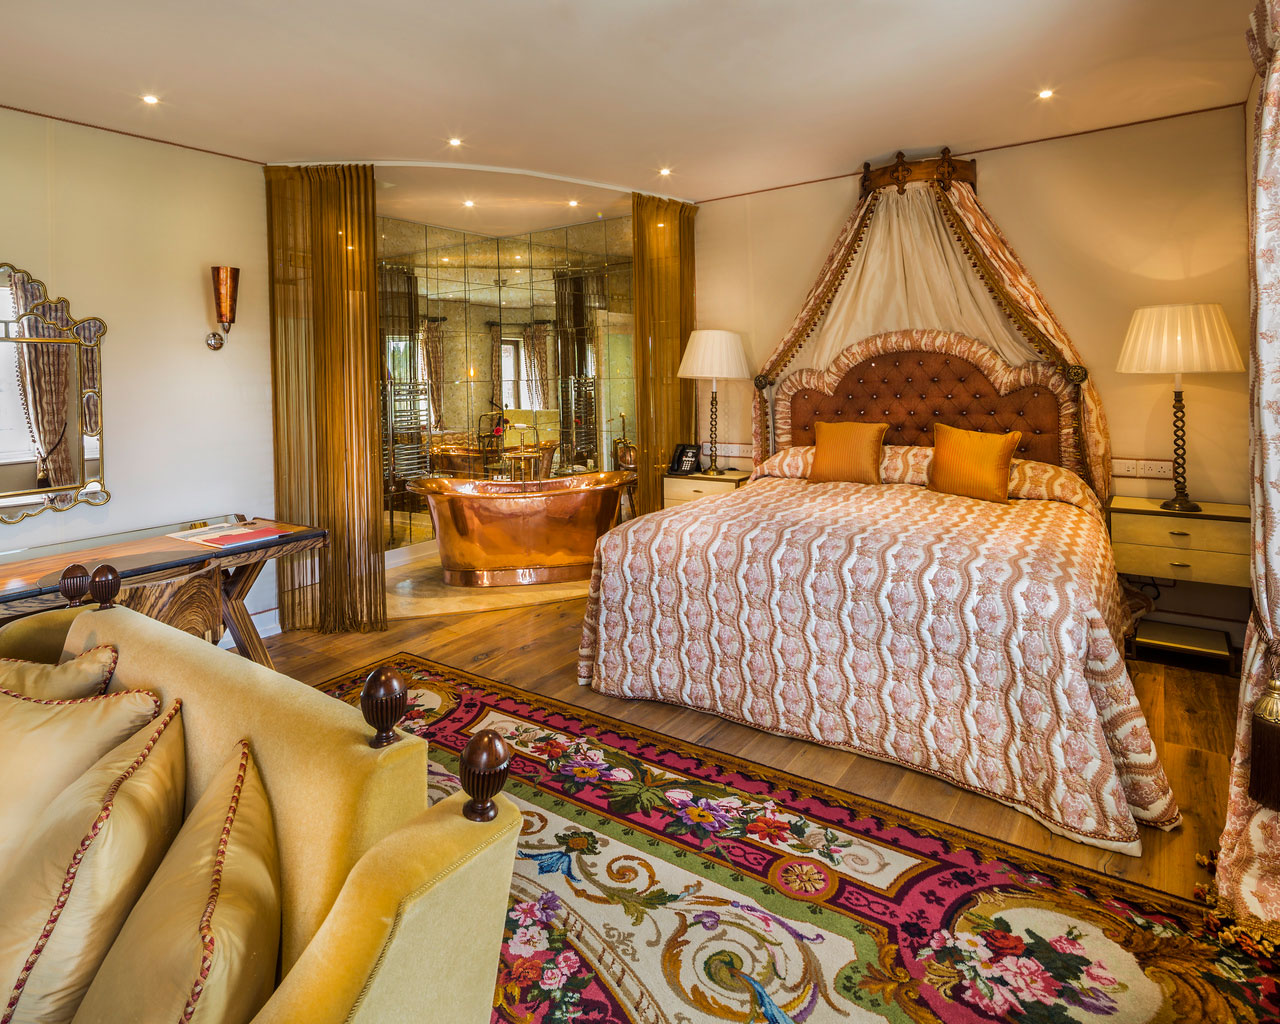 An interior shot of the lodge at ashford castle where if you book a wedding, you could win a luxury cruise to the value of e10000 with a bed, rugs and lamps